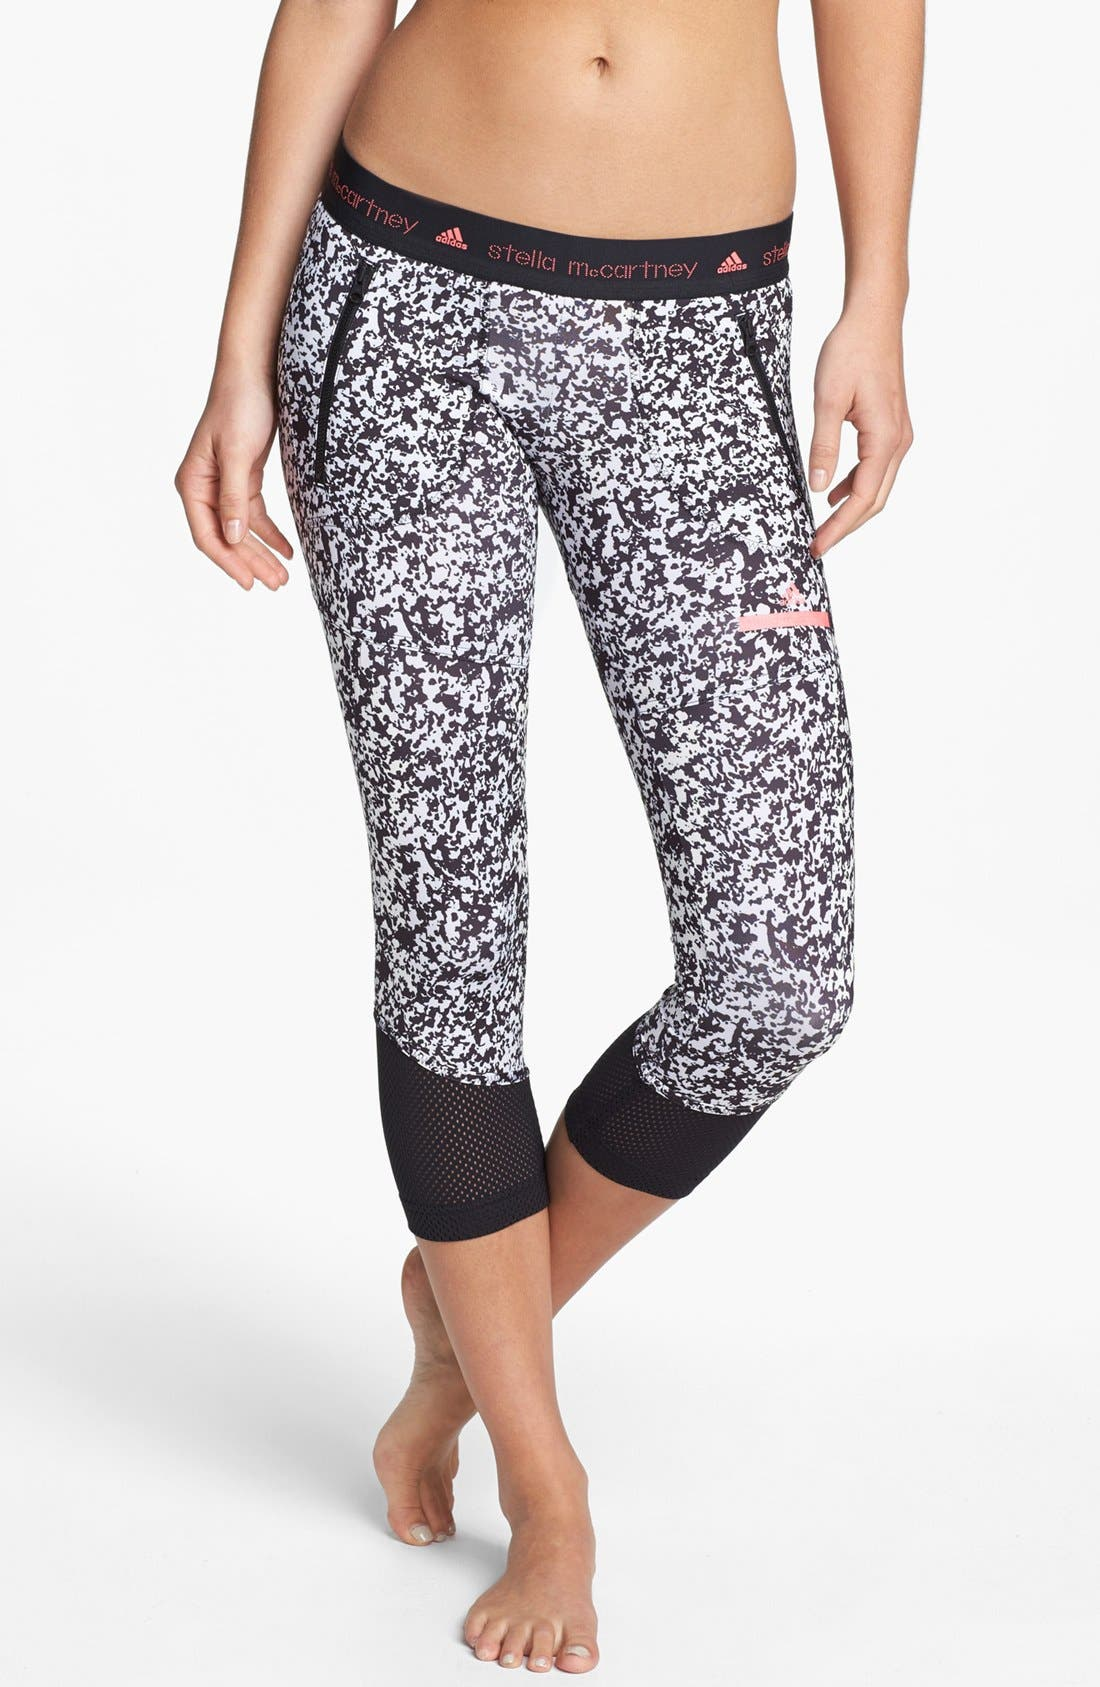 Main Image - adidas by Stella McCartney 'Run' Three Quarter Length Pants